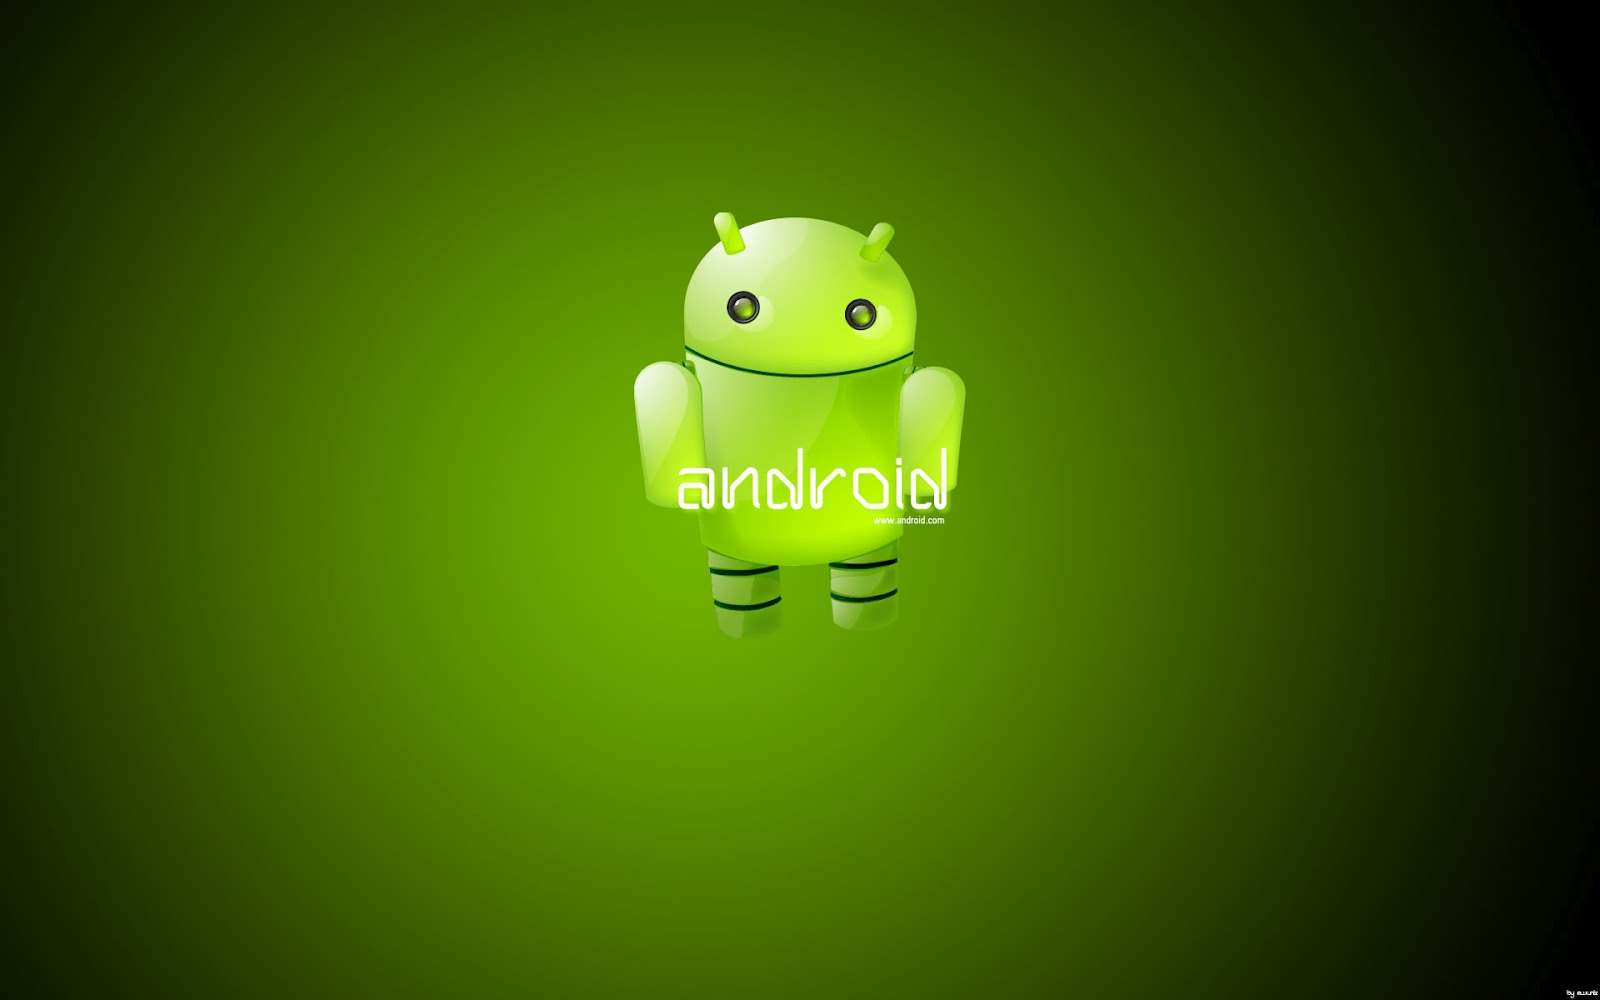 Android Desktop Wallpapers Android Wallpapers For Pc Download 1600x1000